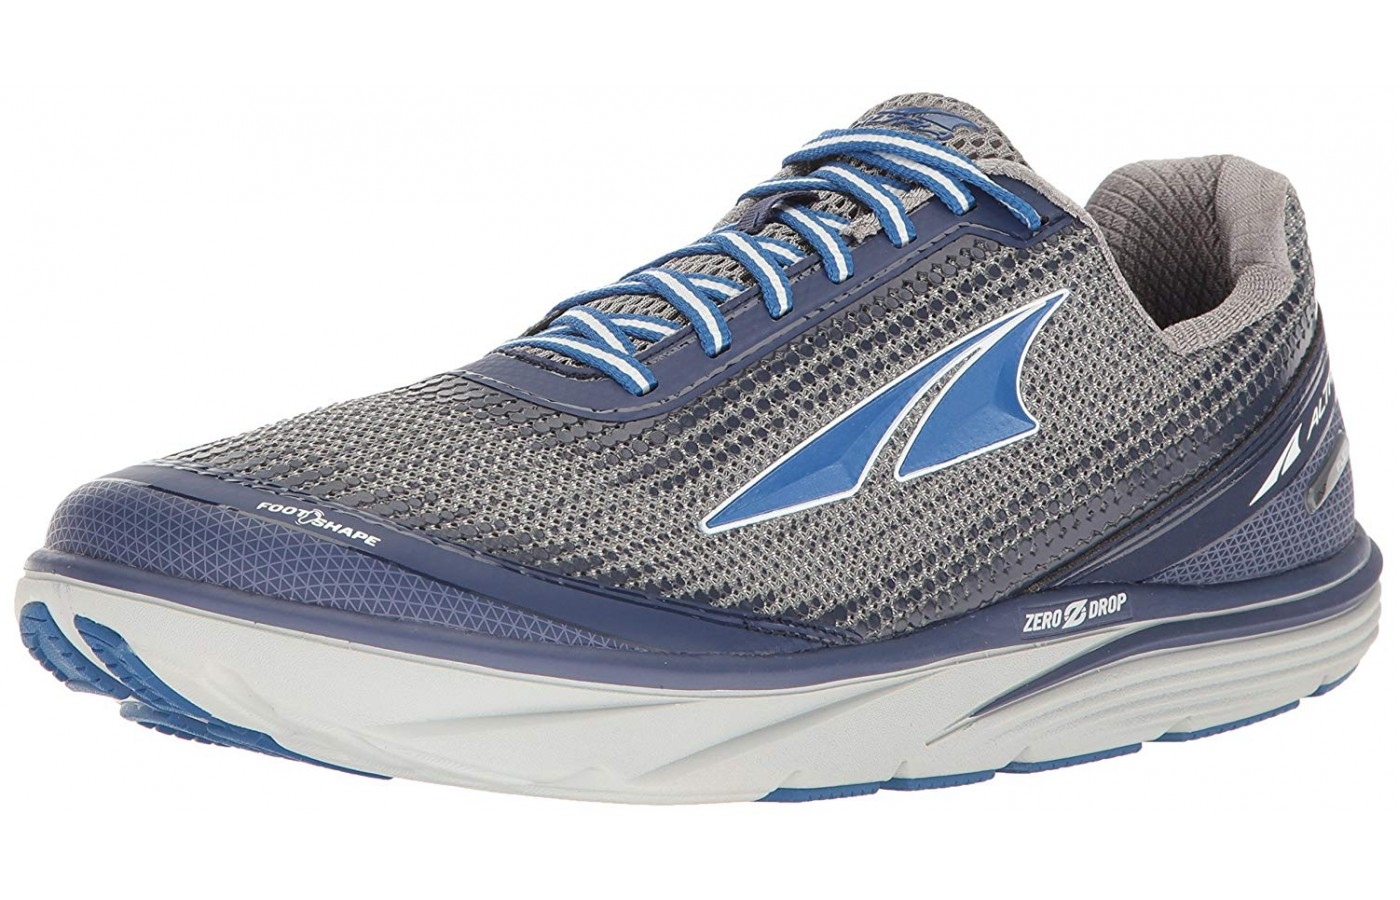 The Altra is made of upper mesh material.